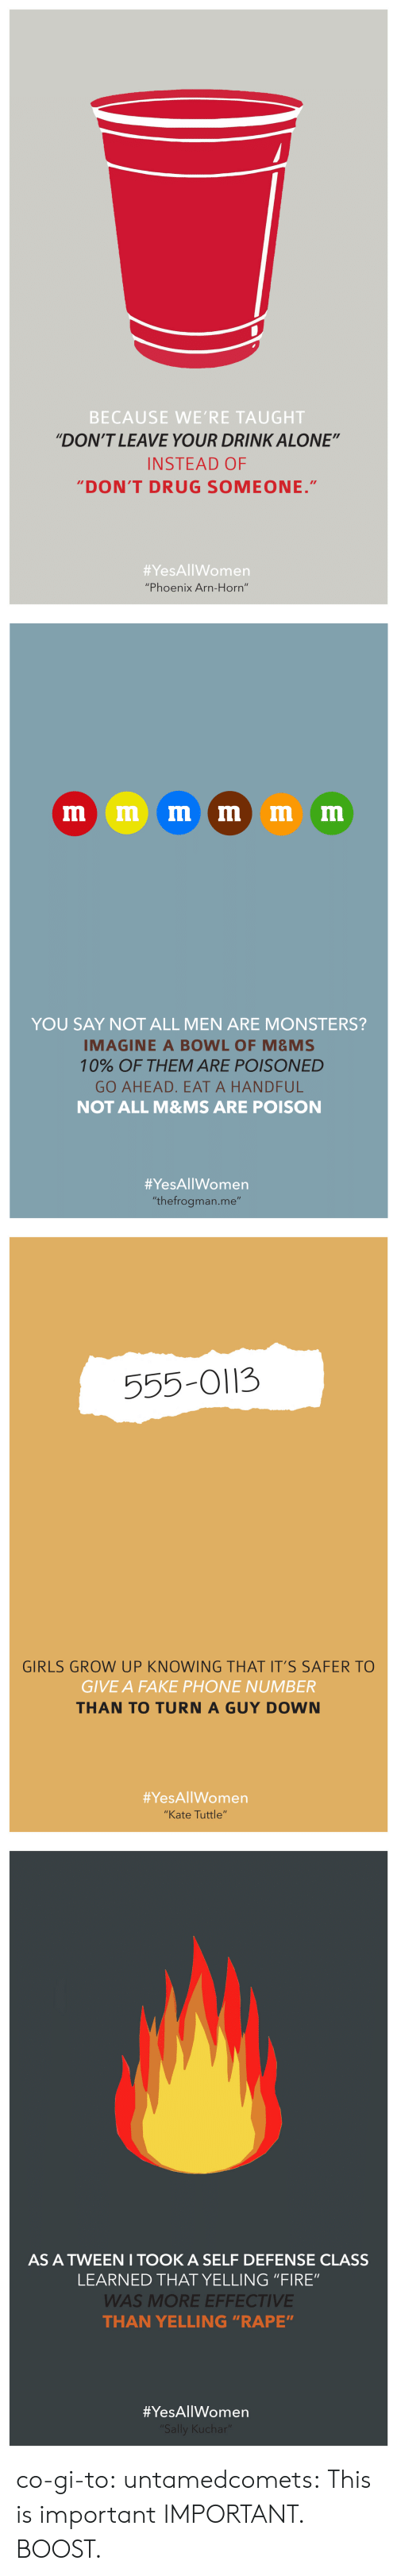 "Being Alone, Fake, and Fire: BECAUSE WE'RE TAUGHT  ""DON'T LEAVE YOUR DRINK ALONE""  INSTEAD OF  DON'T DRUG SOMEONE.""  #YesAllWomen  ""Phoenix Arn-Horn""   YOU SAY NOT ALL MEN ARE MONSTERS?  IMAGINE A BOWL OF M&MS  10% OF THEM ARE POISONED  GO AHEAD. EAT A HANDFUL  NOT ALL M&MS ARE POISON  #YesAllWomen  ""thefrogman.me""   555-O113  GIRLS GROW UP KNOWING THAT IT'S SAFER TO  GIVE A FAKE PHONE NUMBER  THAN TO TURN A GUY DOWN  #YesAllWomen  ""Kate Tuttle""   AS A TWEEN I TOOK A SELF DEFENSE CLASS  LEARNED THAT YELLING ""FIRE""  WAS MORE EFFECTIVE  THAN YELLING ""RAPE""  co-gi-to:  untamedcomets:  This is important  IMPORTANT. BOOST."